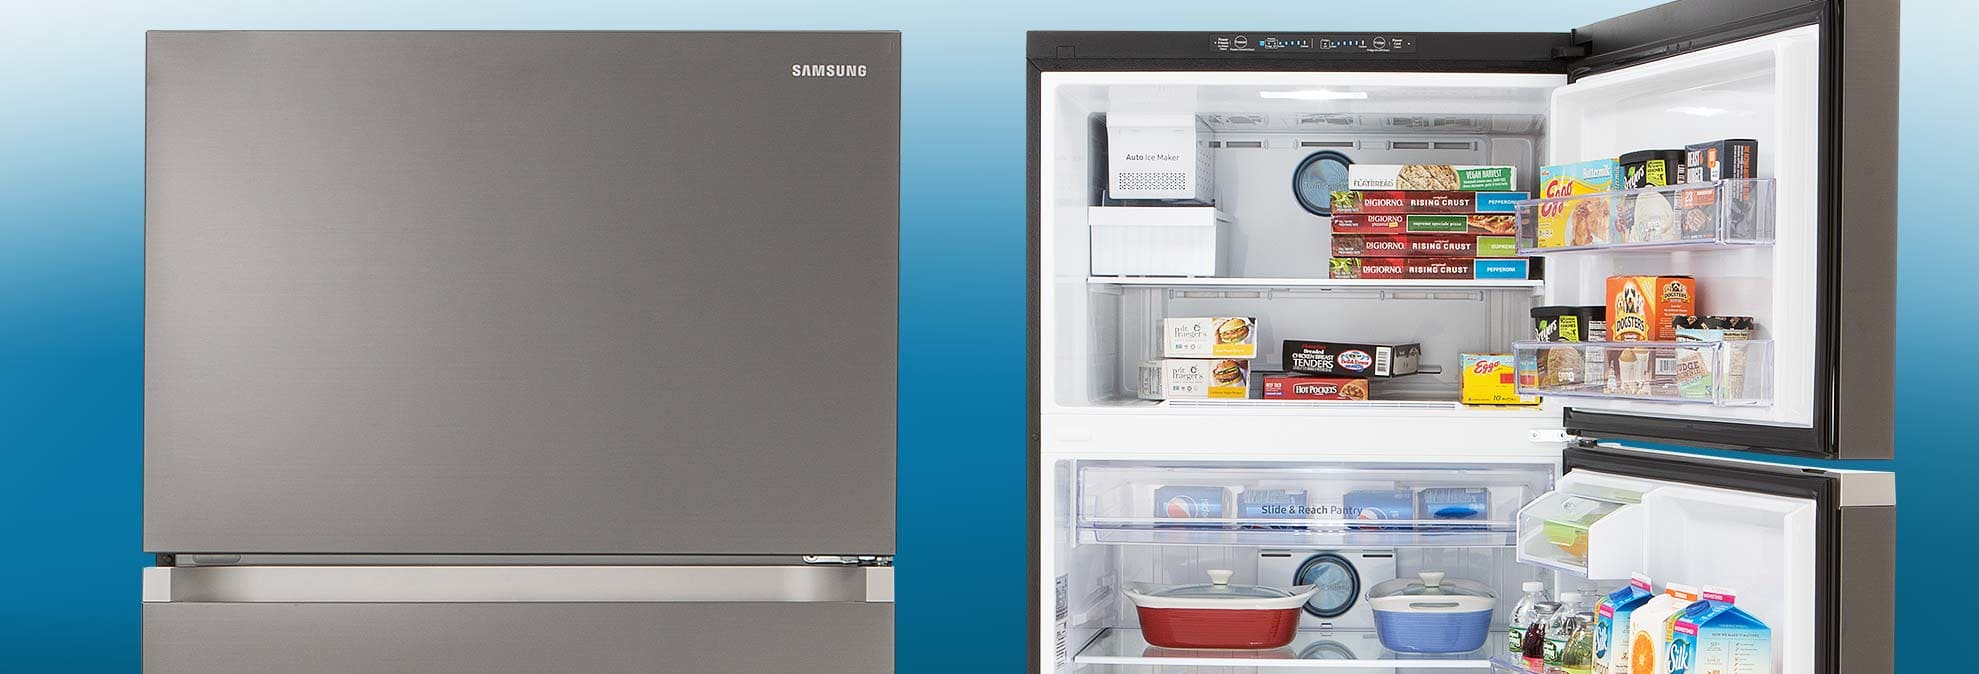 Flexi-Fridges Review | Convertible Compartments - Consumer Reports